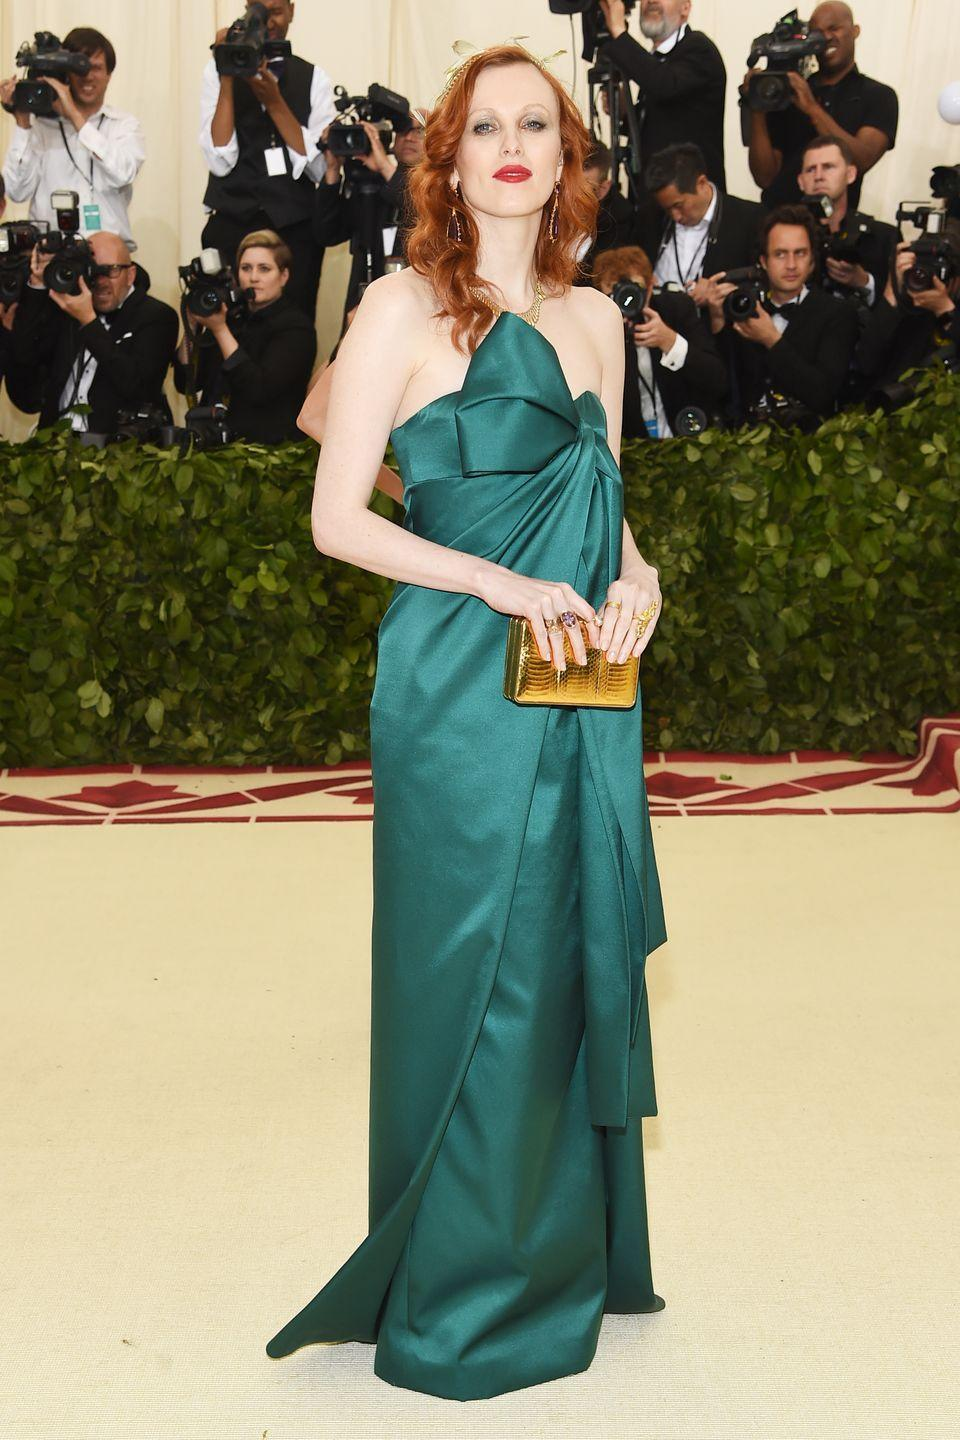 <p>Model Karen Elson turned up at the 2018 Met Gala looking like a glam version of Scottish Princess Merida in a dark green Michael Kors gown.</p>